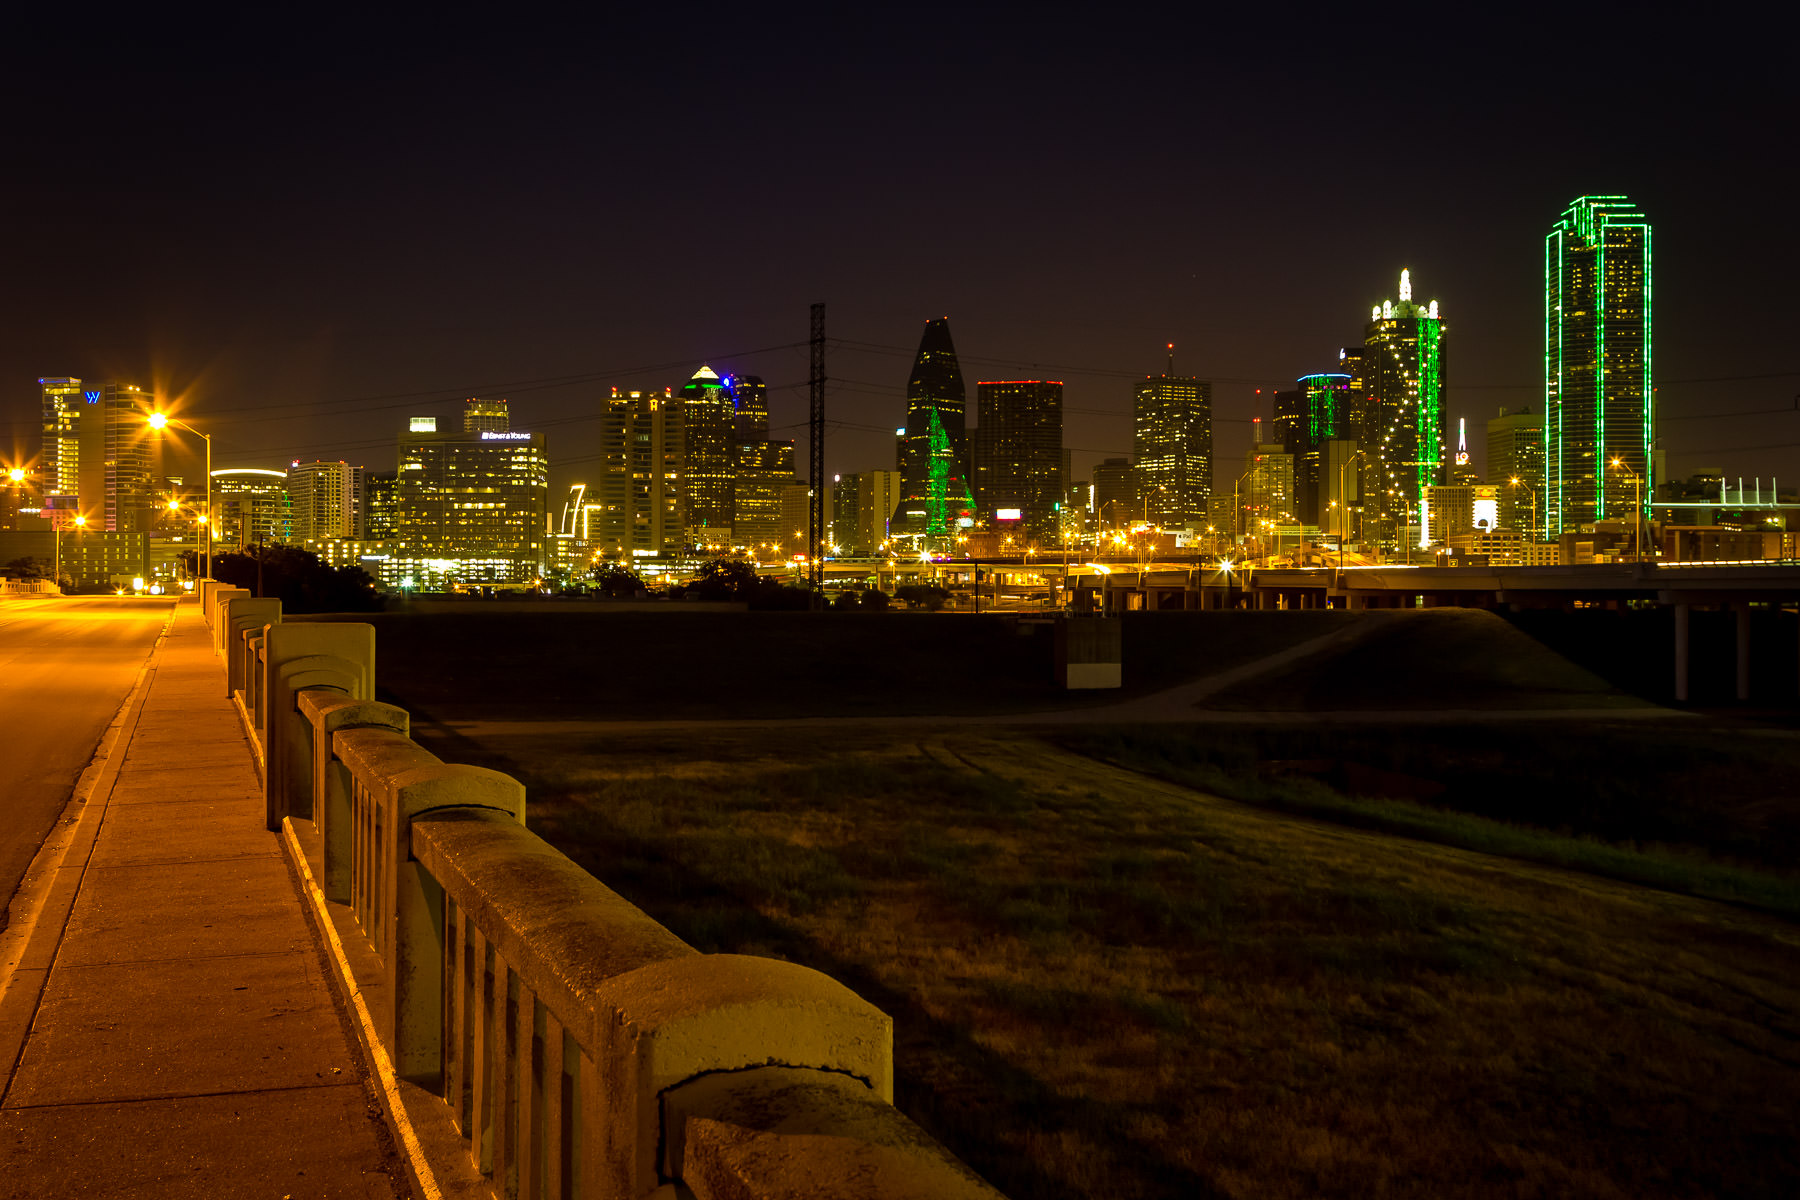 Dallas' distinctive skyline as seen from the Continental Avenue Bridge over the Trinity River floodplain.